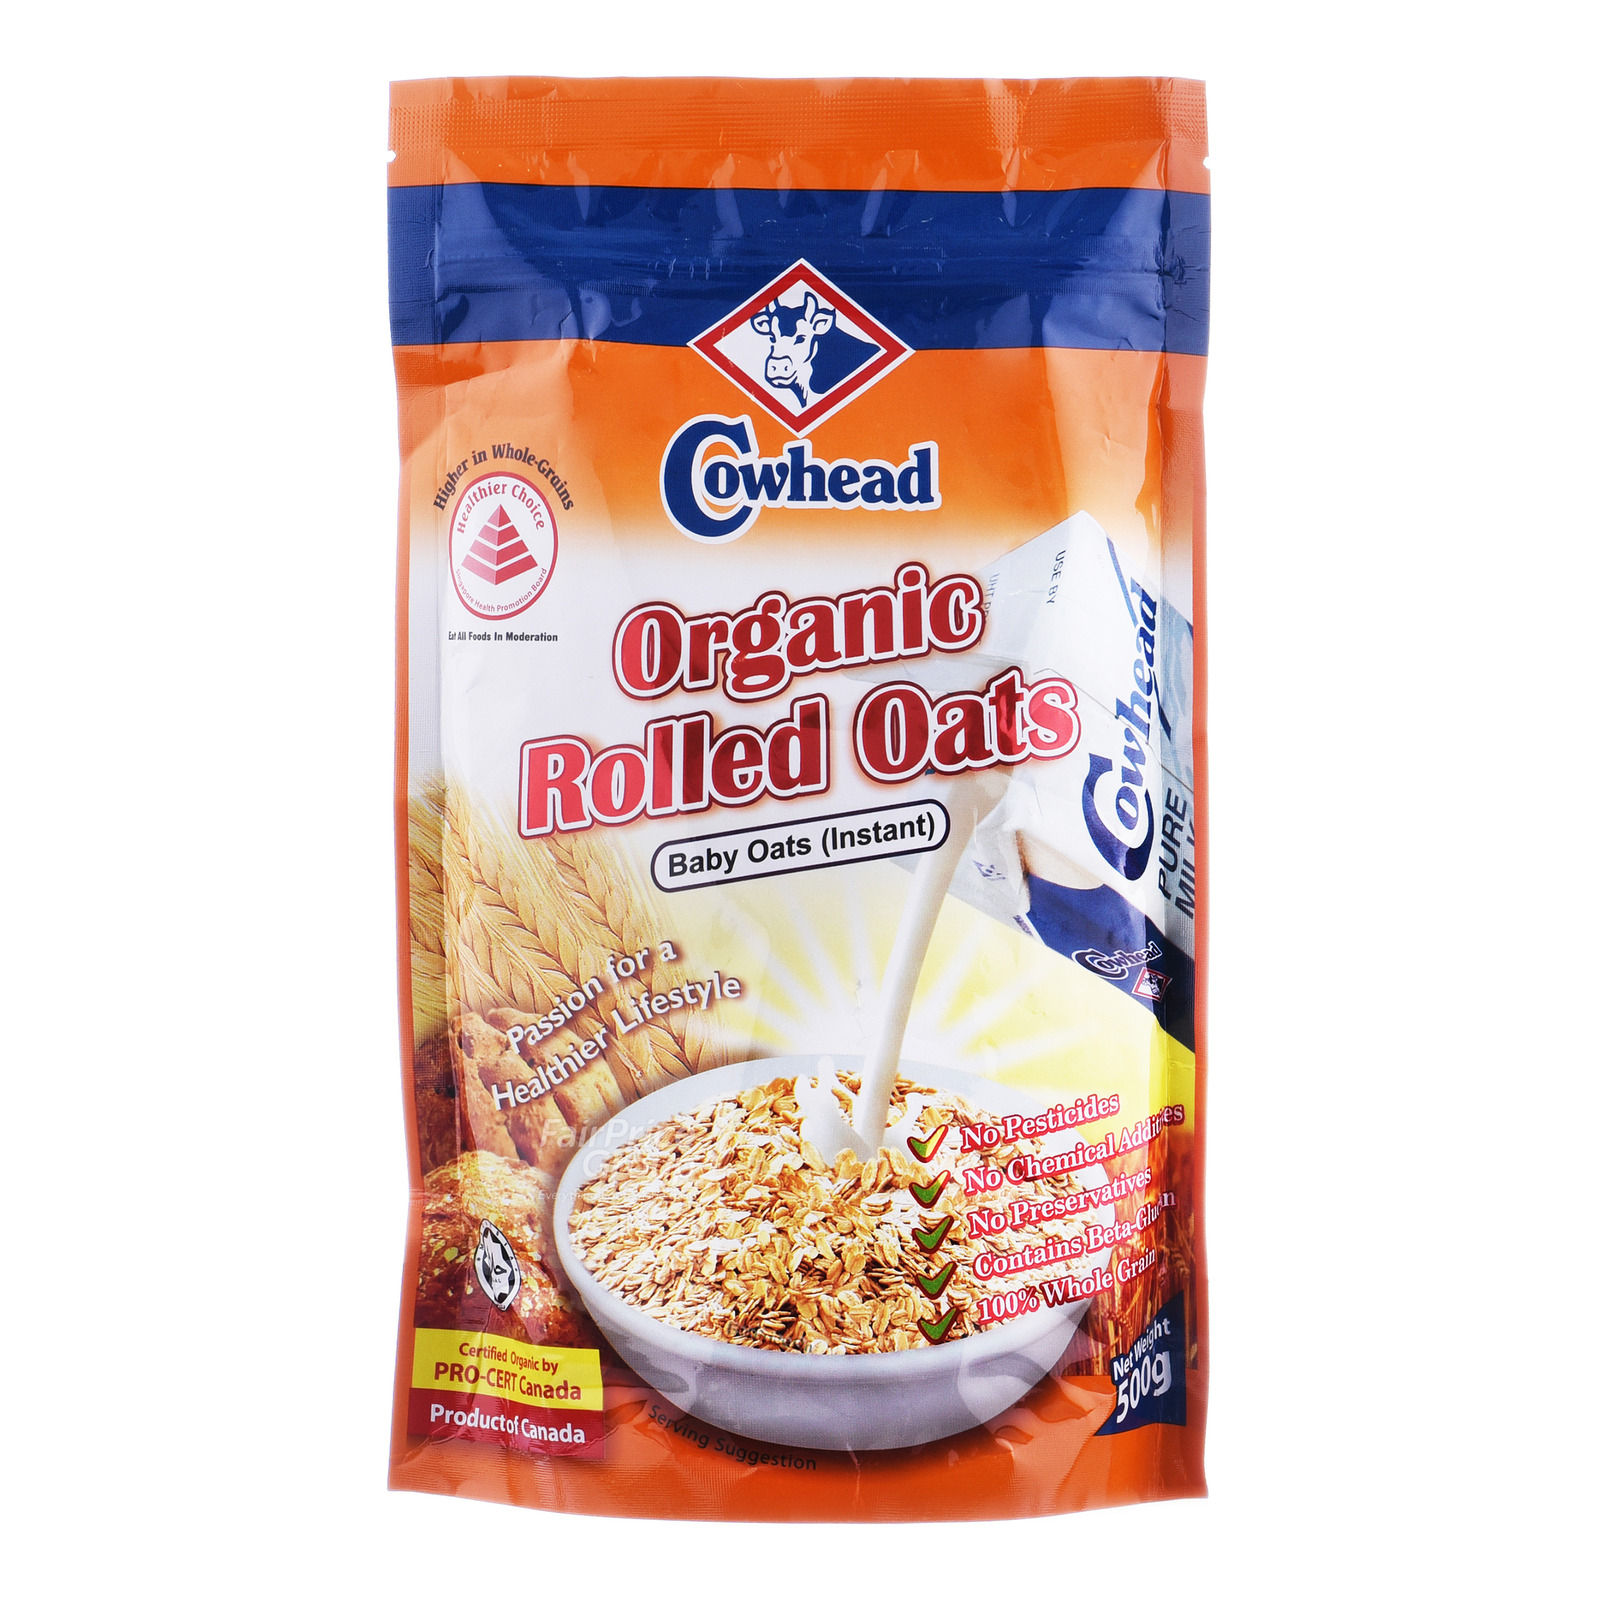 Cowhead Organic Rolled Oats - Instant